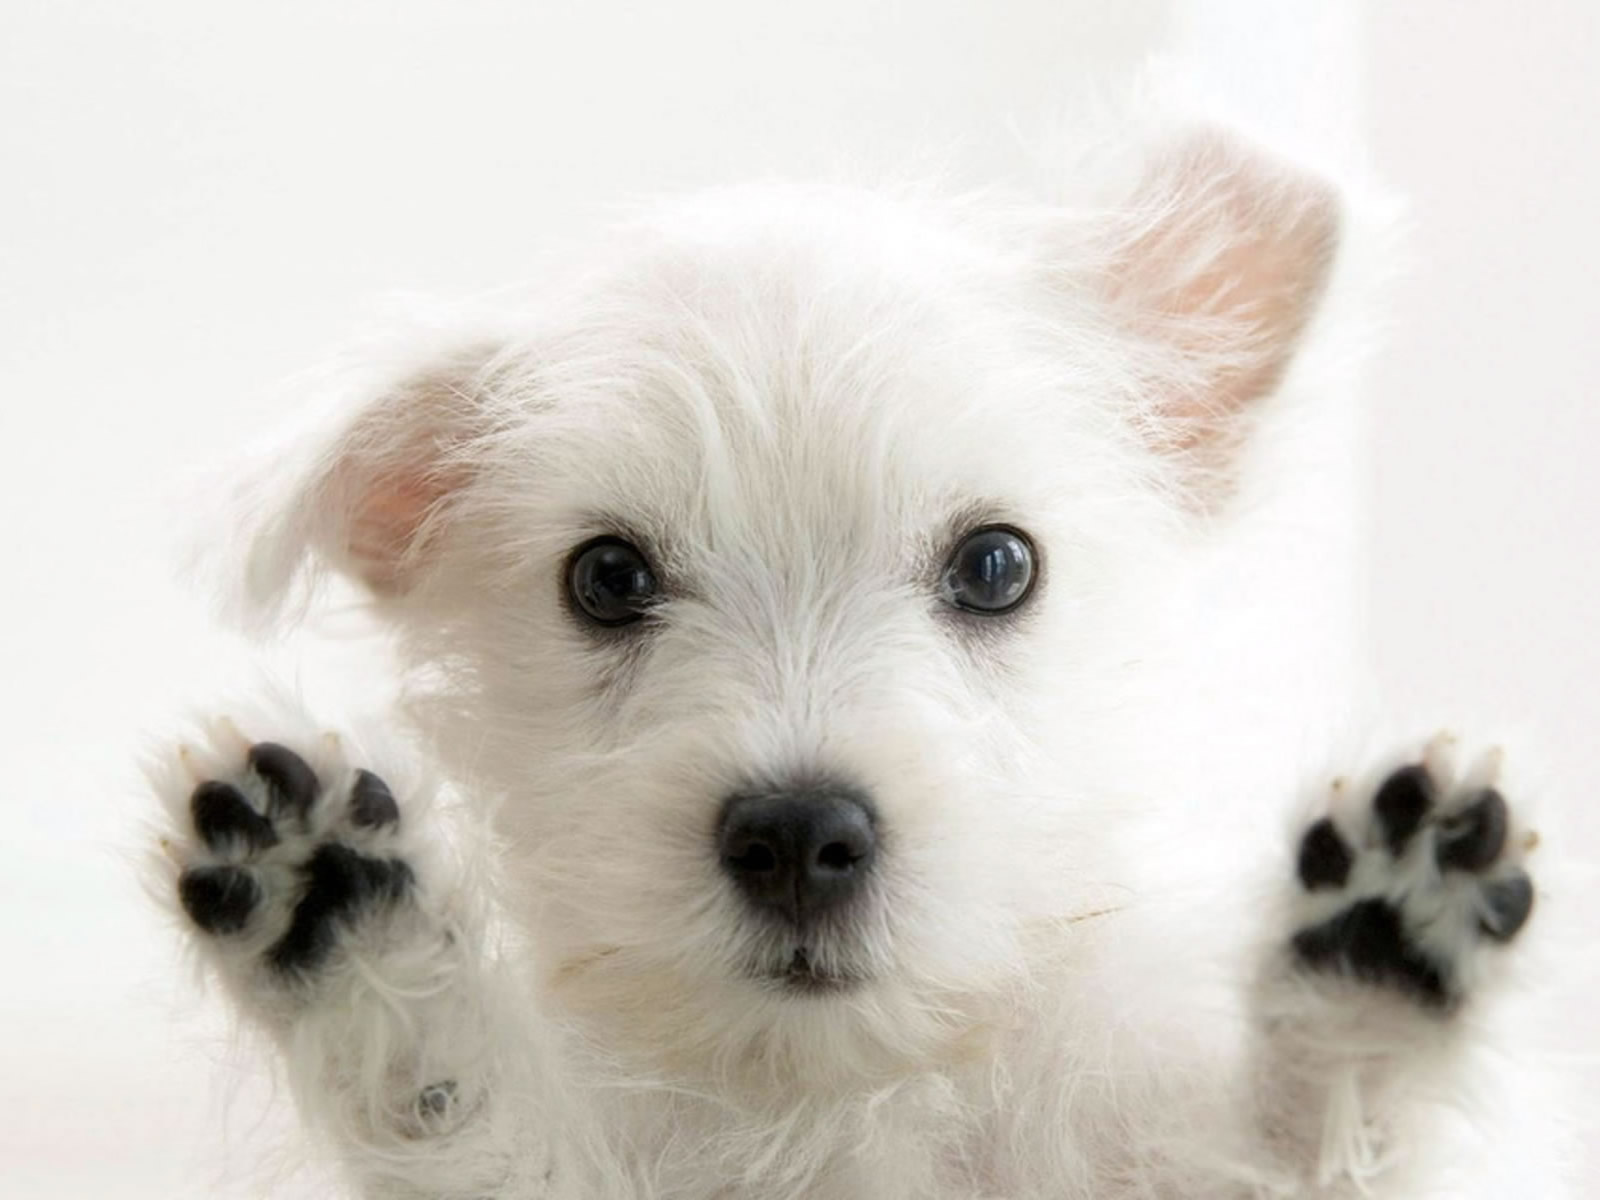 VERY CUTE DOG BACKGROUND WALLPAPER   425   HD Wallpapers 1600x1200